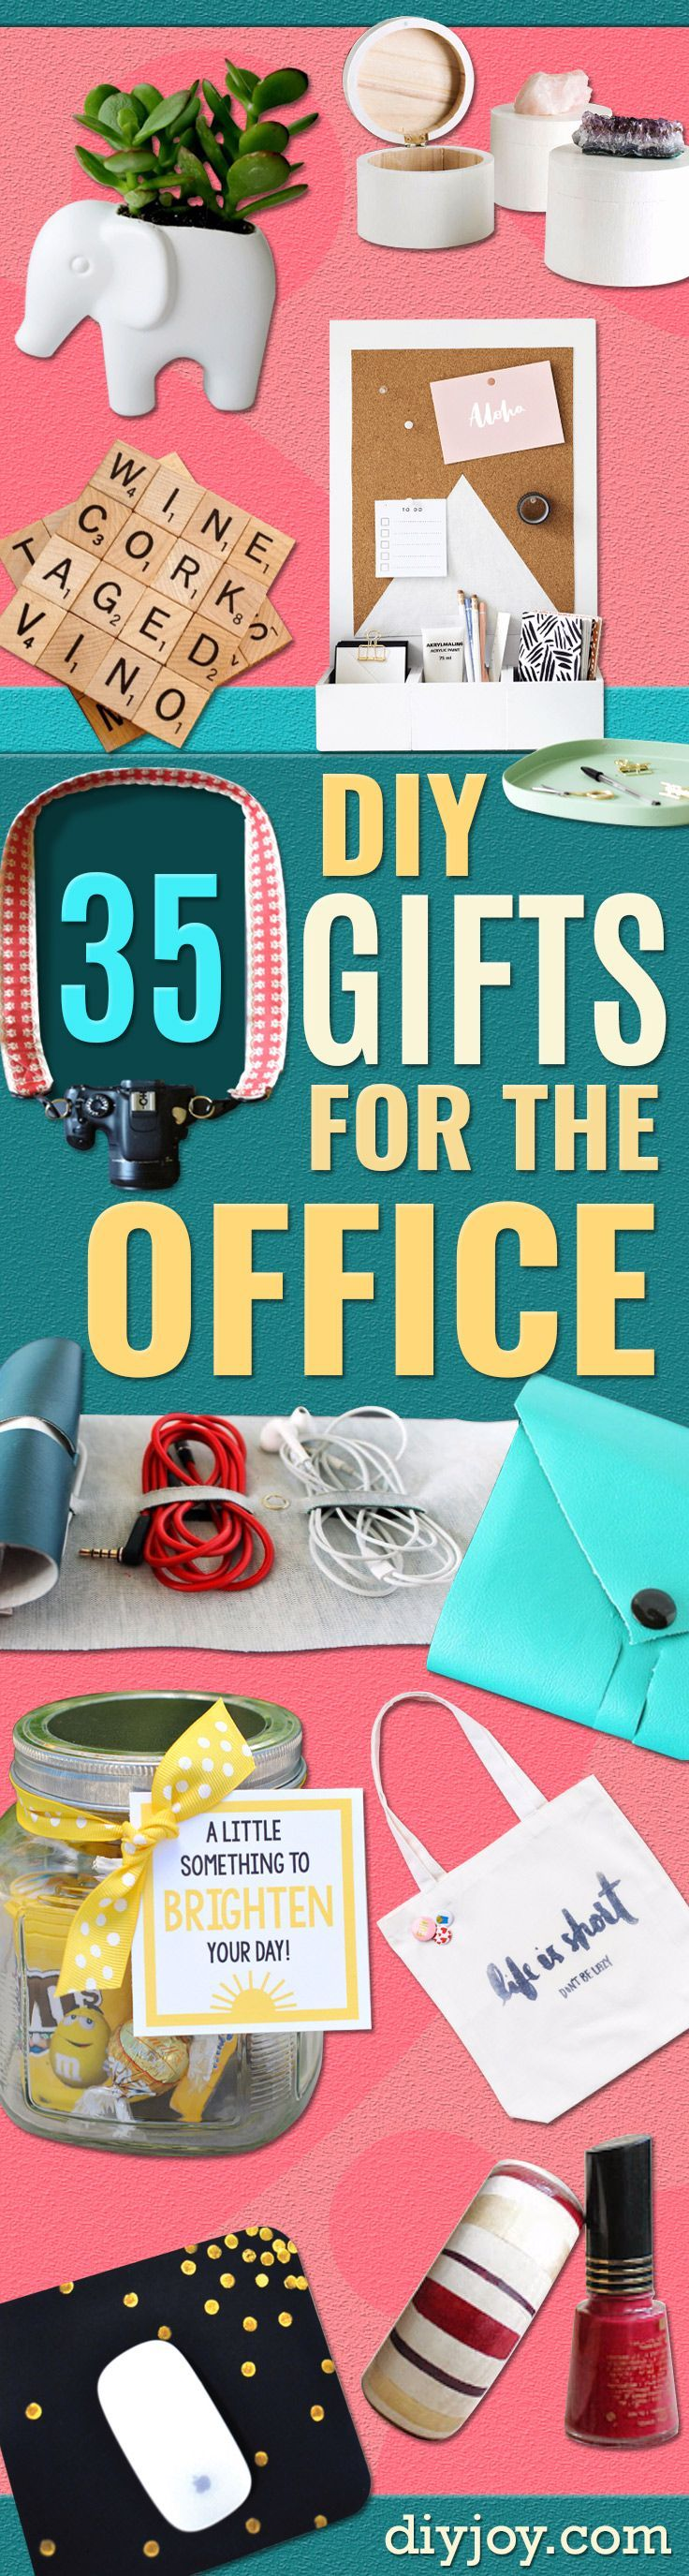 DIY Gift For The Office   DIY Gift Ideas For Your Boss And Coworkers   Cheap